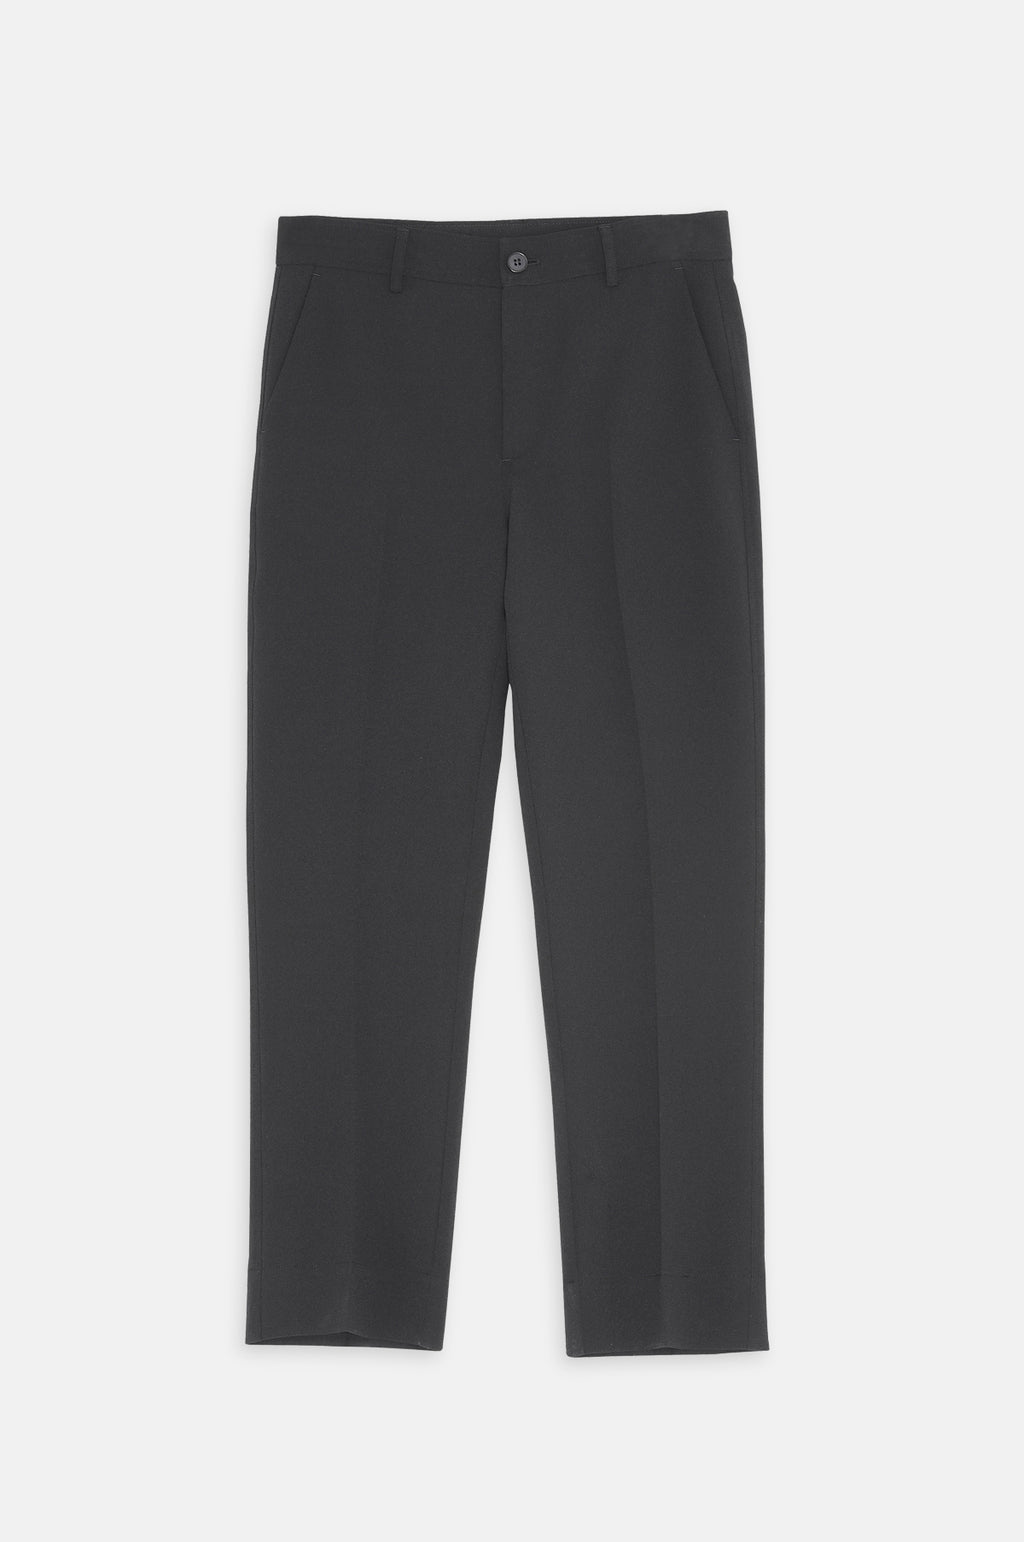 Heavy Crepe Pant in Black